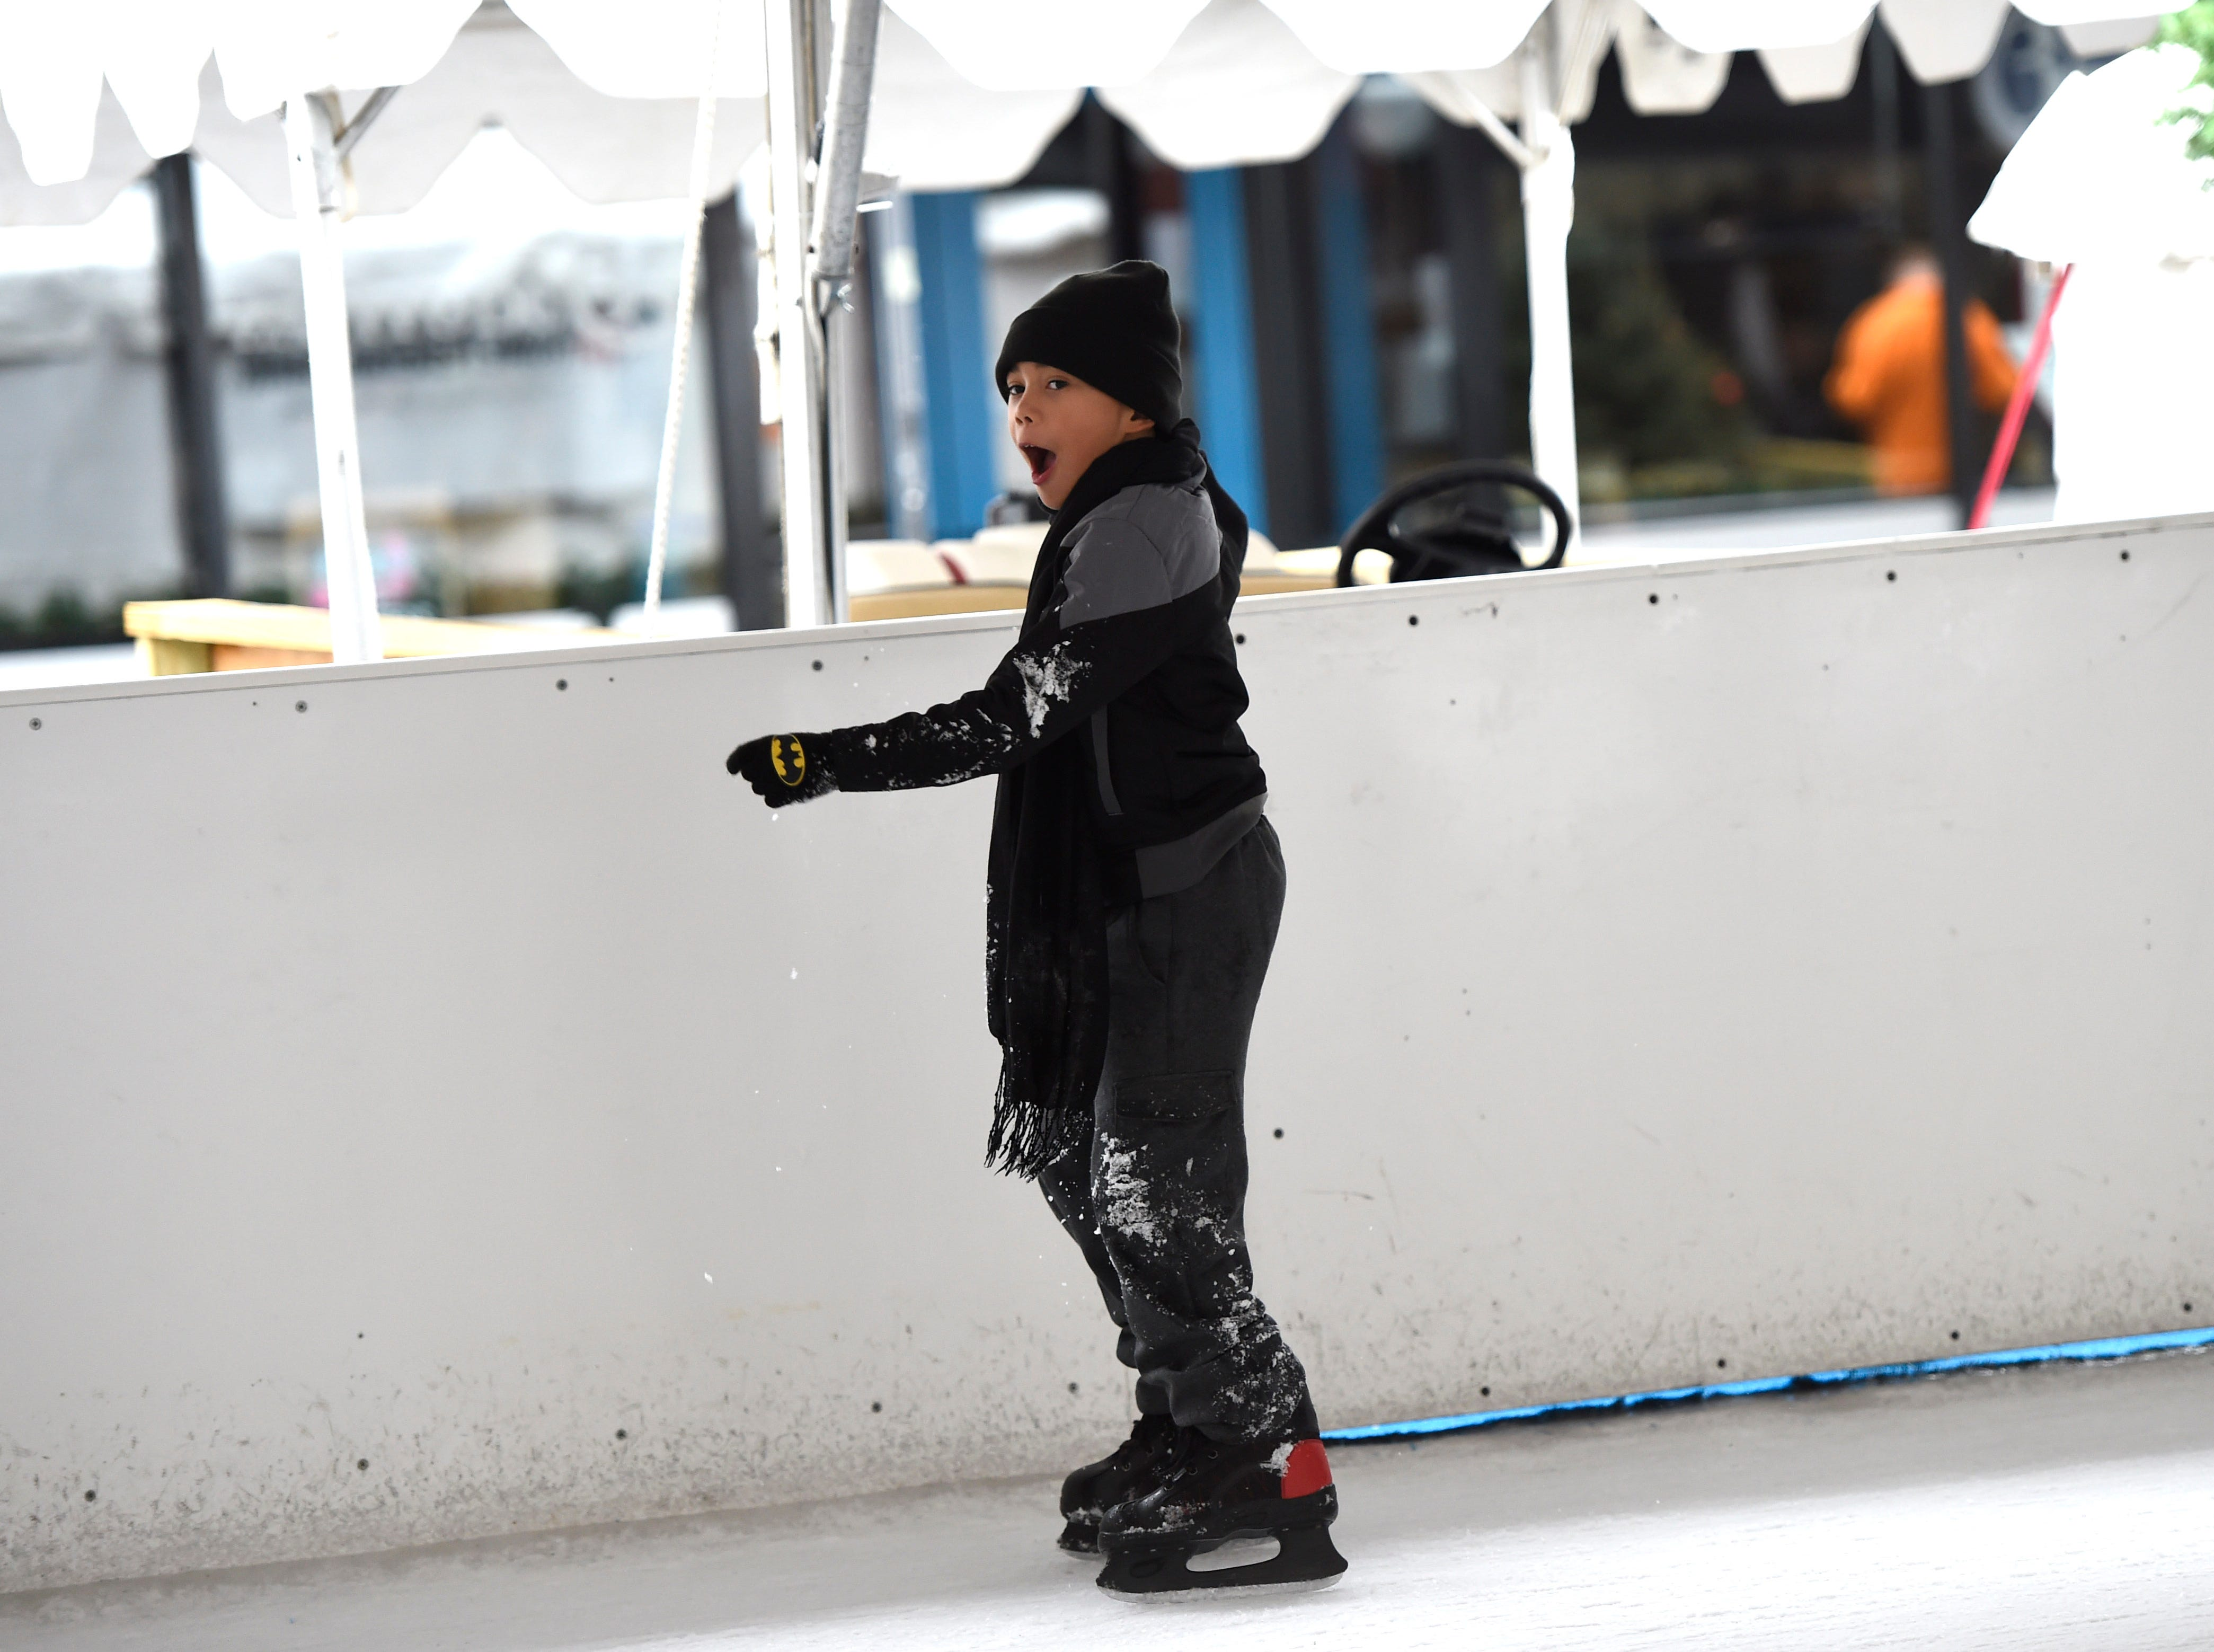 Malachi Kirk ice skates for the first time in Market Square on Christmas Eve, Wednesday, Dec. 24, 2014.